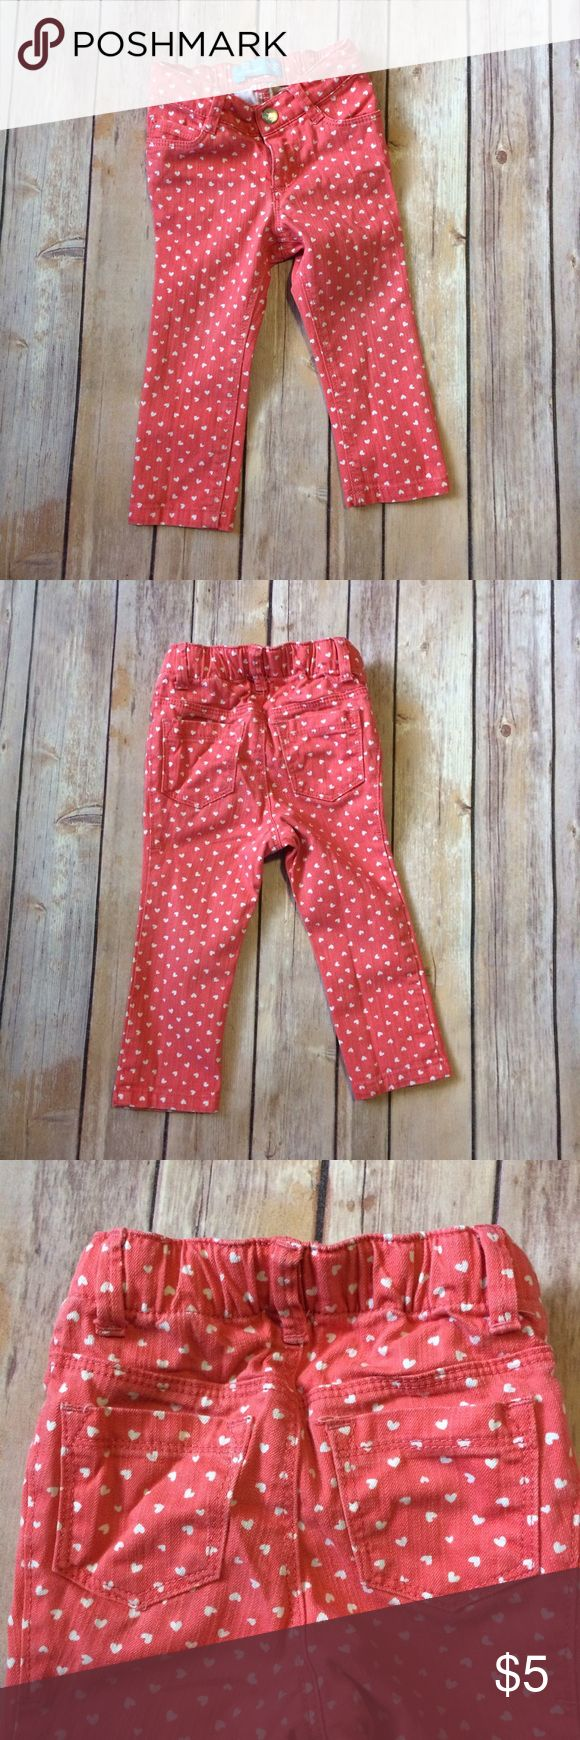 Old Navy Skinny Jeans Orange & white skinny jeans with a heart pattern. Has an adjustable waist. 5 pocket design. VGUC for mild wash wear. 111709 Old Navy Bottoms Jeans